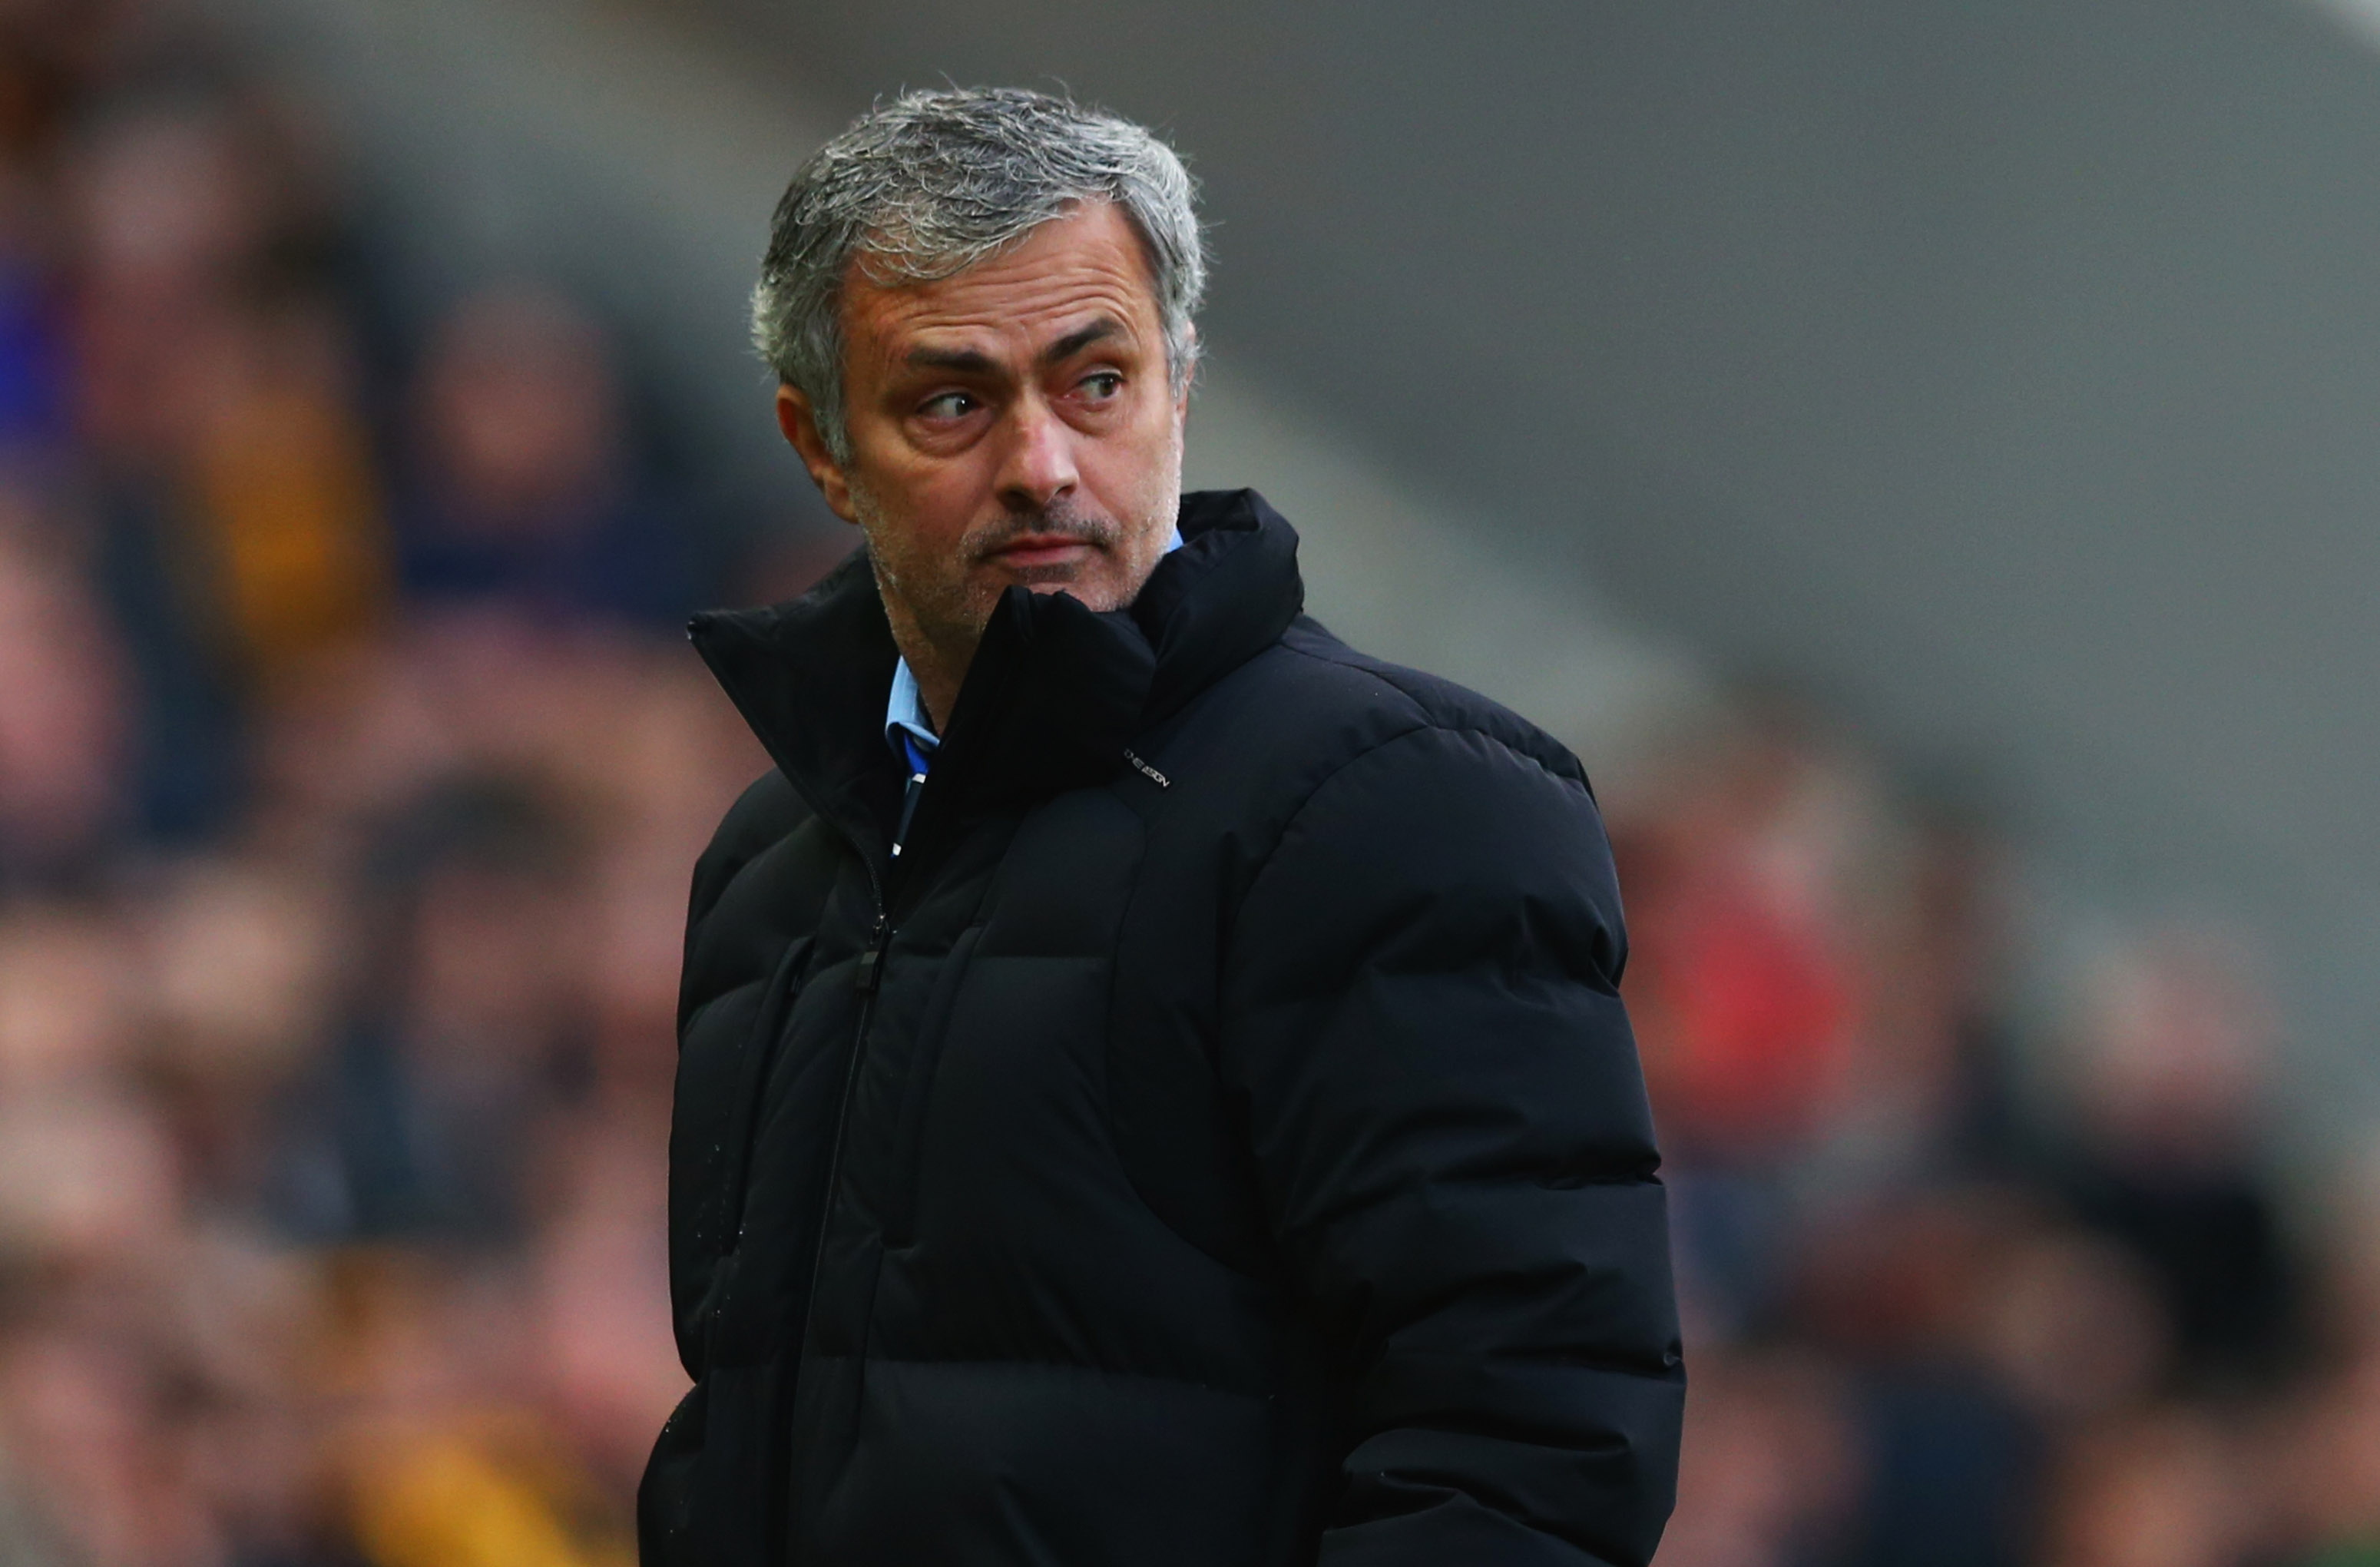 Jose Mourinho manager of Chelsea looks thoughtful during the Barclays Premier League match between Hull City and Chelsea at KC Stadium on March 22, 2015 in Hull, England. (Photo by Matthew Lewis/Getty Images)